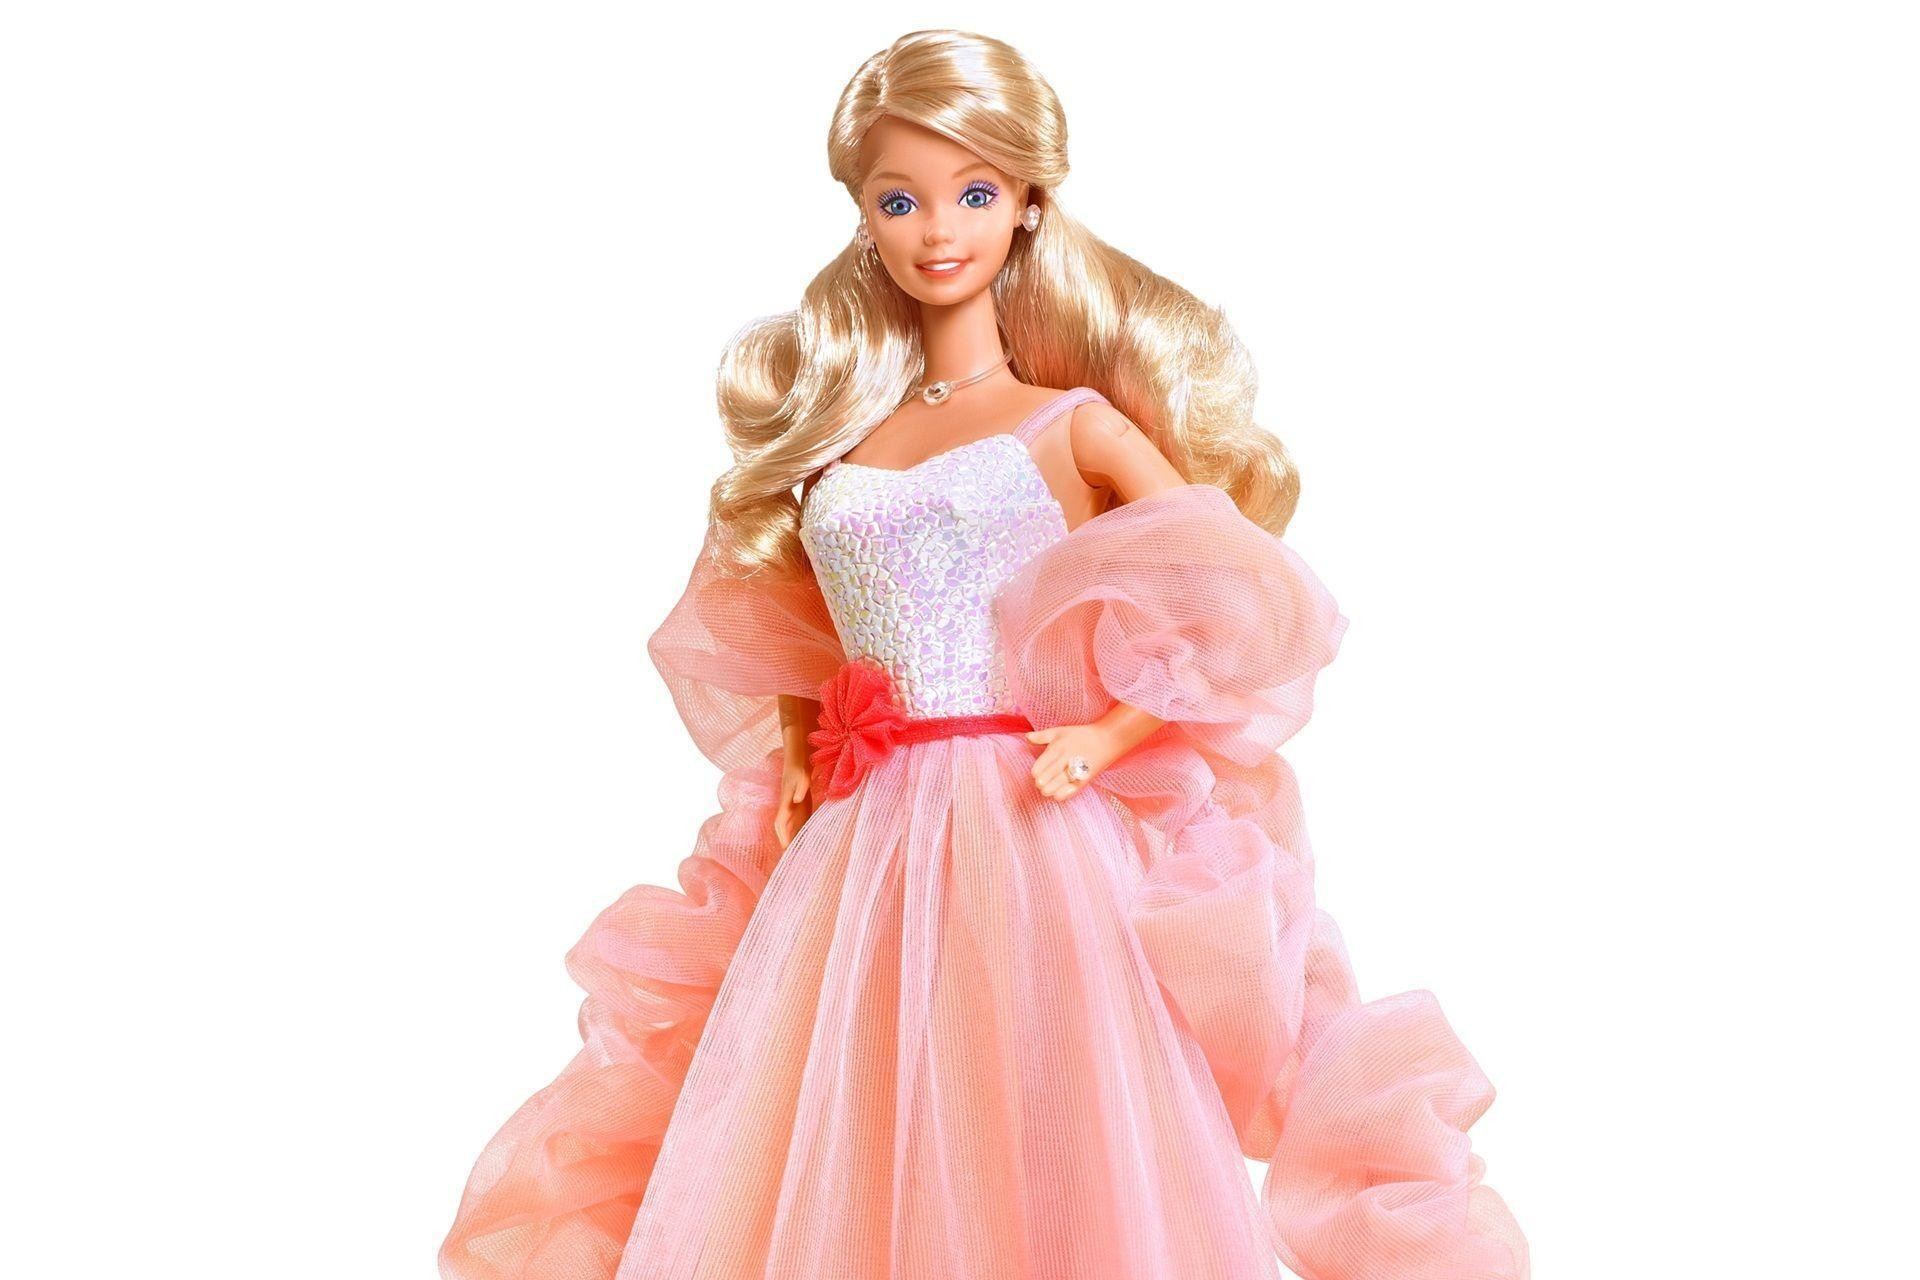 Barbie Doll Wallpaper 62 Images